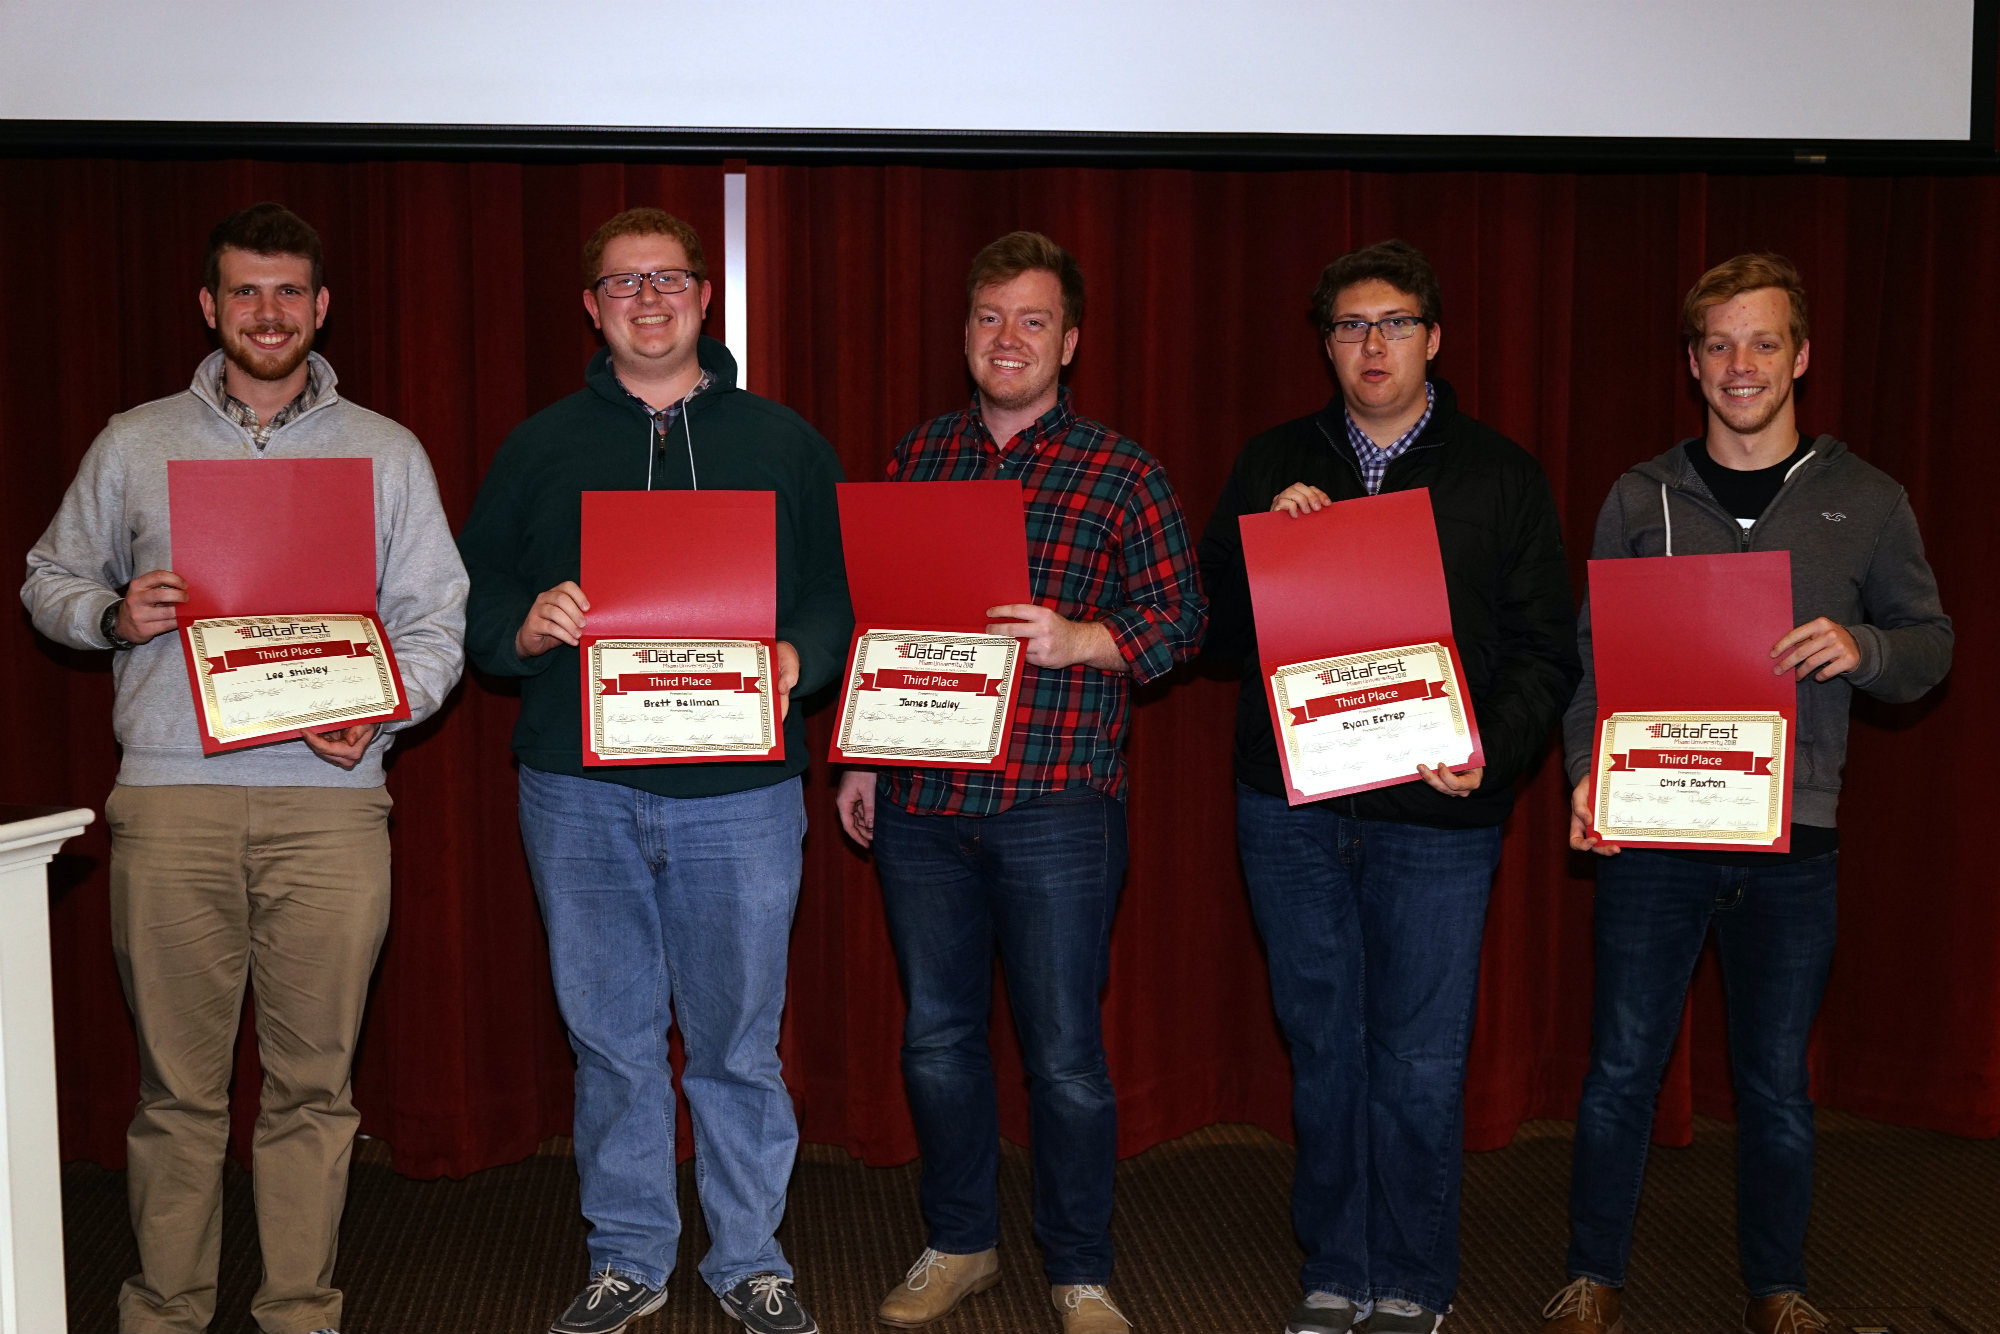 3rd place: Data Diggers -- Jimmy Dudley, Brett Bellman, Ryan Estep, Chris Paxton, Lee Shibley